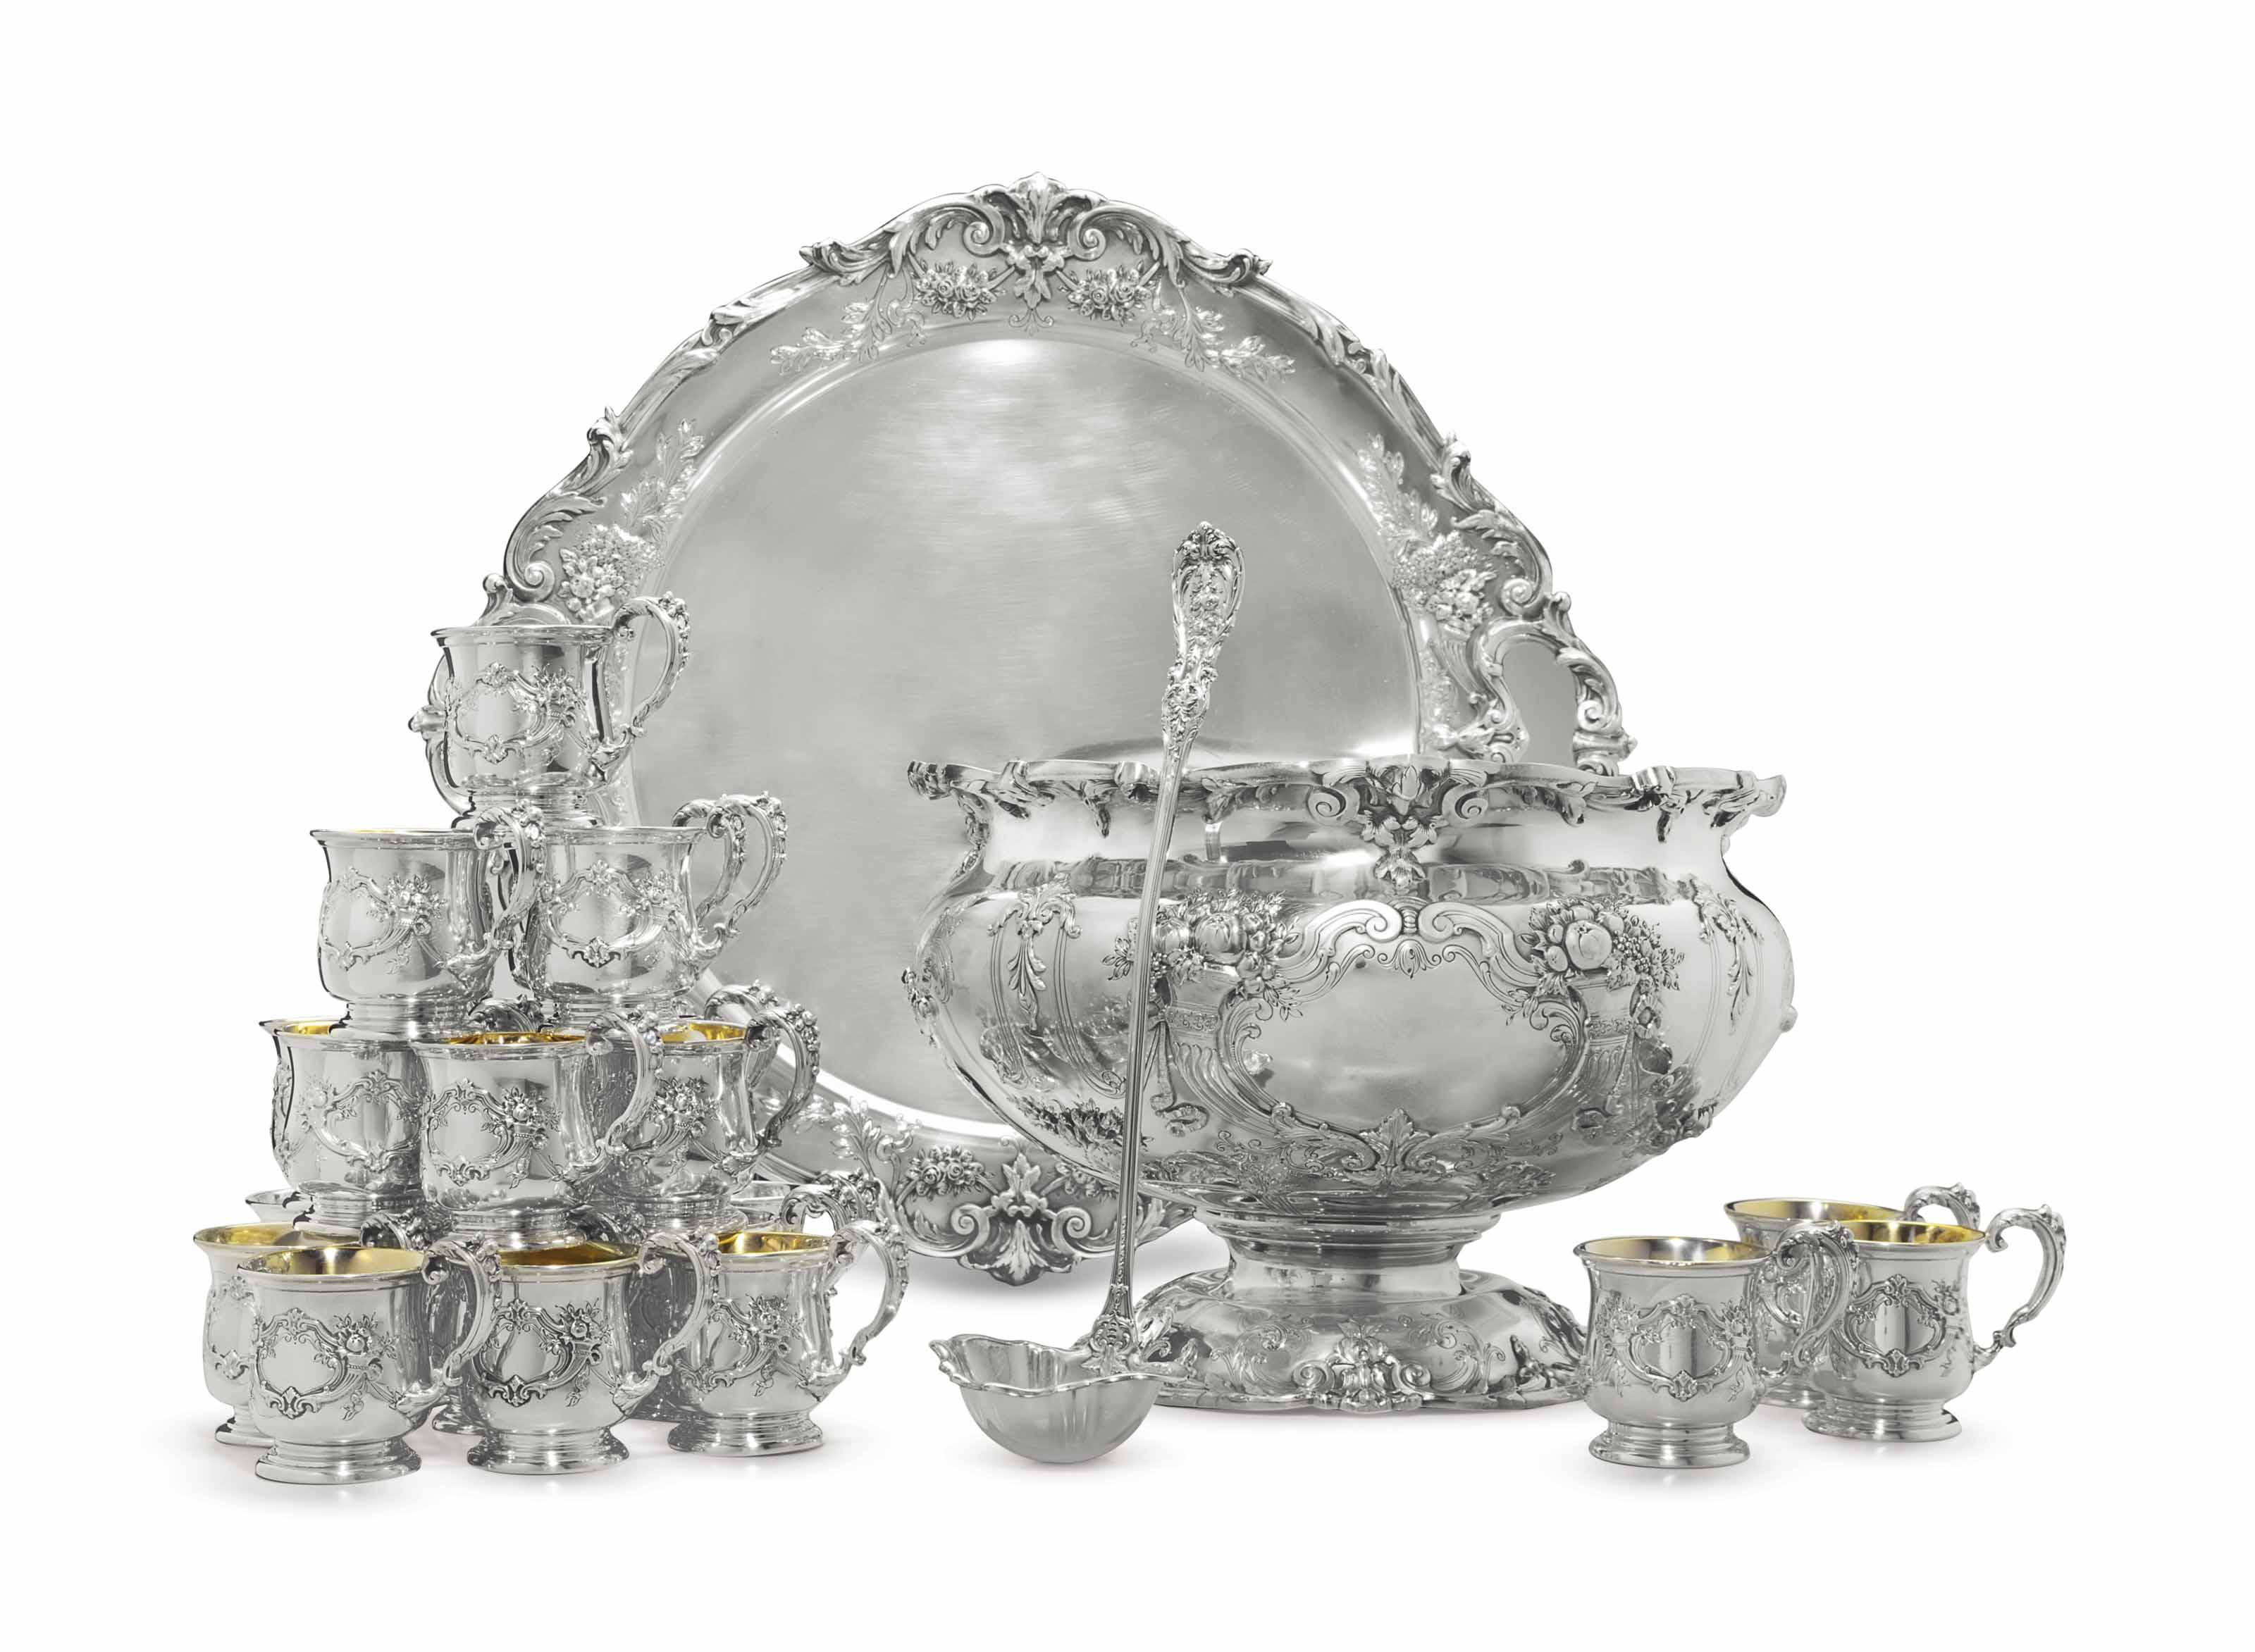 AN IMPRESSIVE SILVER PUNCH BOWL, TRAY AND TWENTY-FOUR MATCHING CUPS